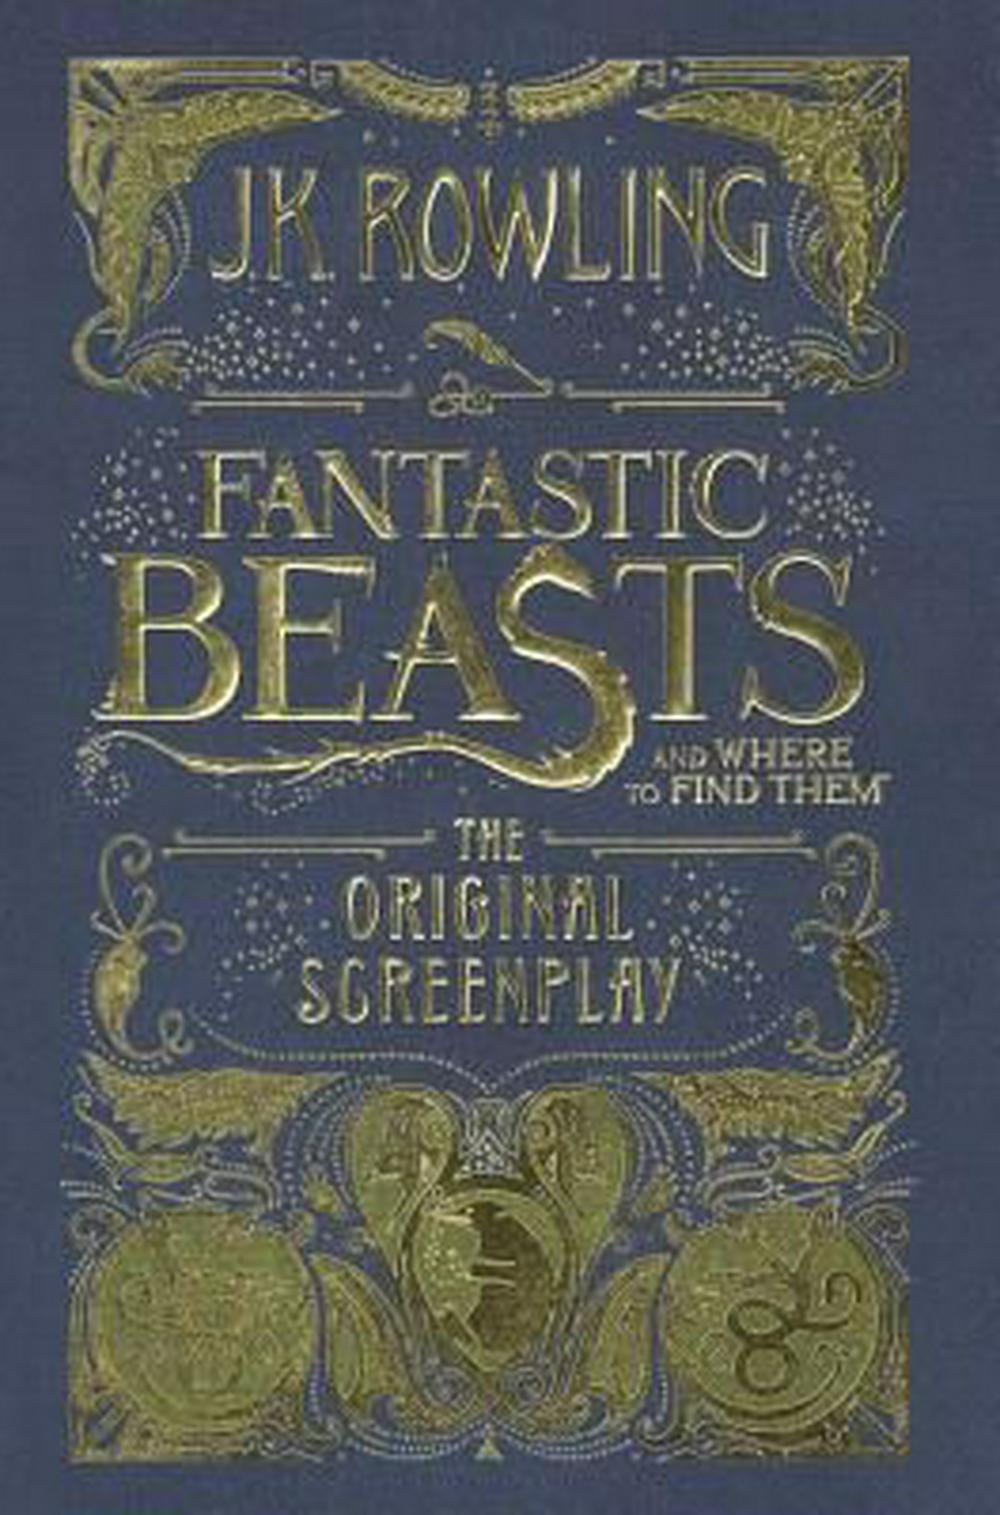 Fantastic Beasts and Where to Find Them: The Original Screenplay by J.K. Rowling, ISBN: 9780606396684